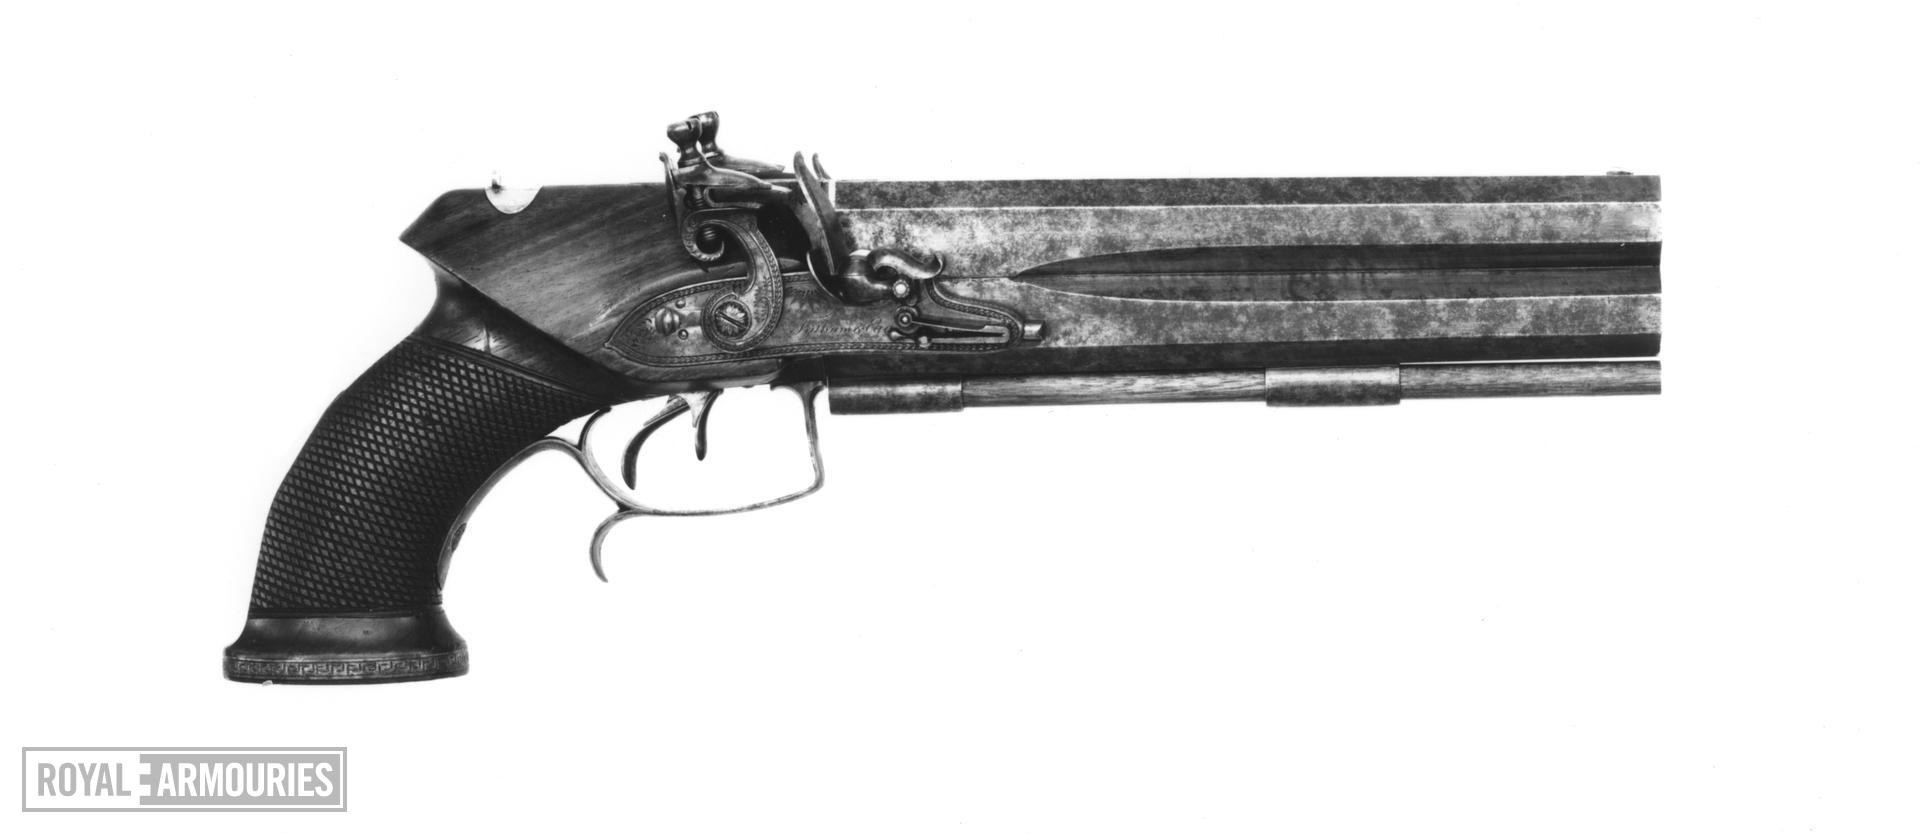 Flintlock double-barrelled pistol with detachable stock (not shown). English, about 1805. Made by Tatham and Egg (XII.1380)